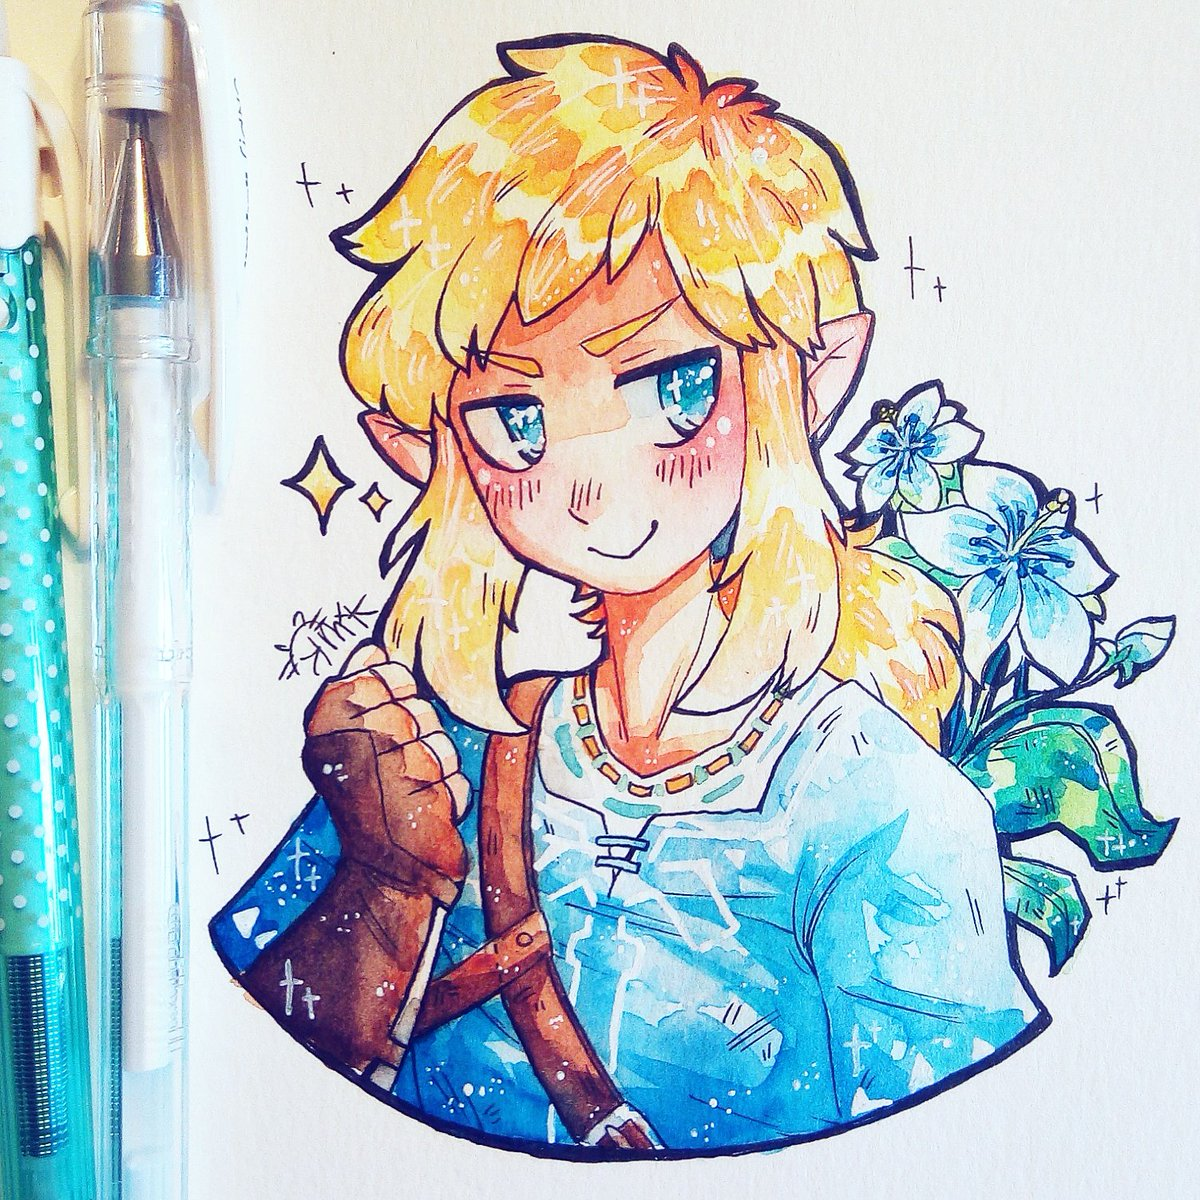 Some #BOTW fan art! This game is so fun! So much to explore~♡♡  #watercolor #illustration #loz <br>http://pic.twitter.com/pr6kQYhDKj